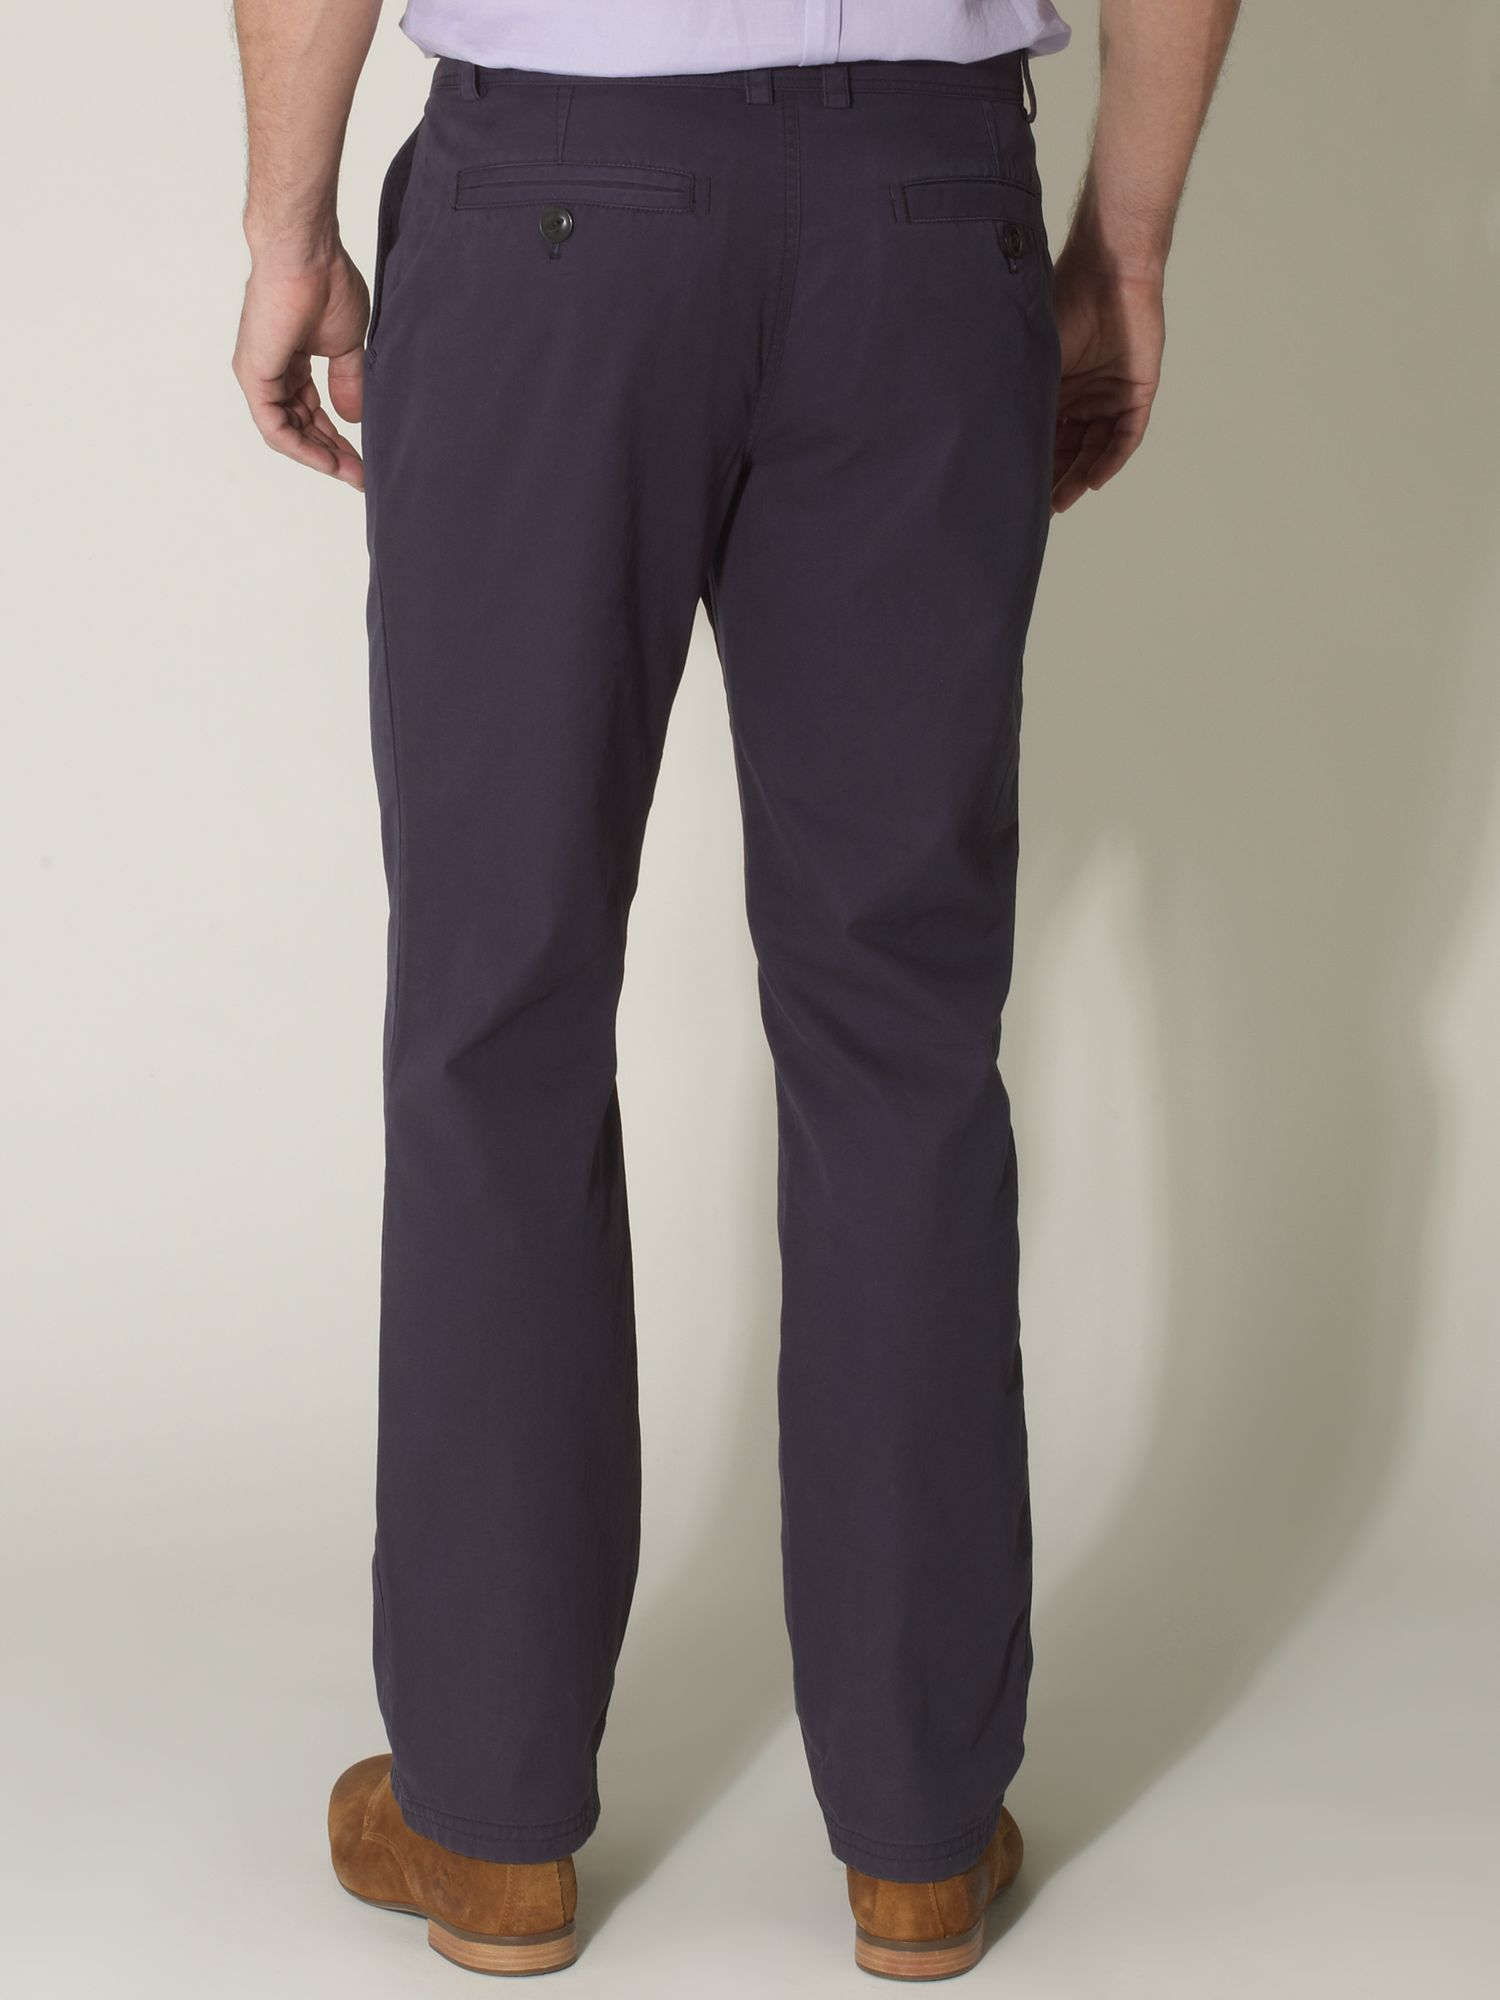 Faber cotton twill chino